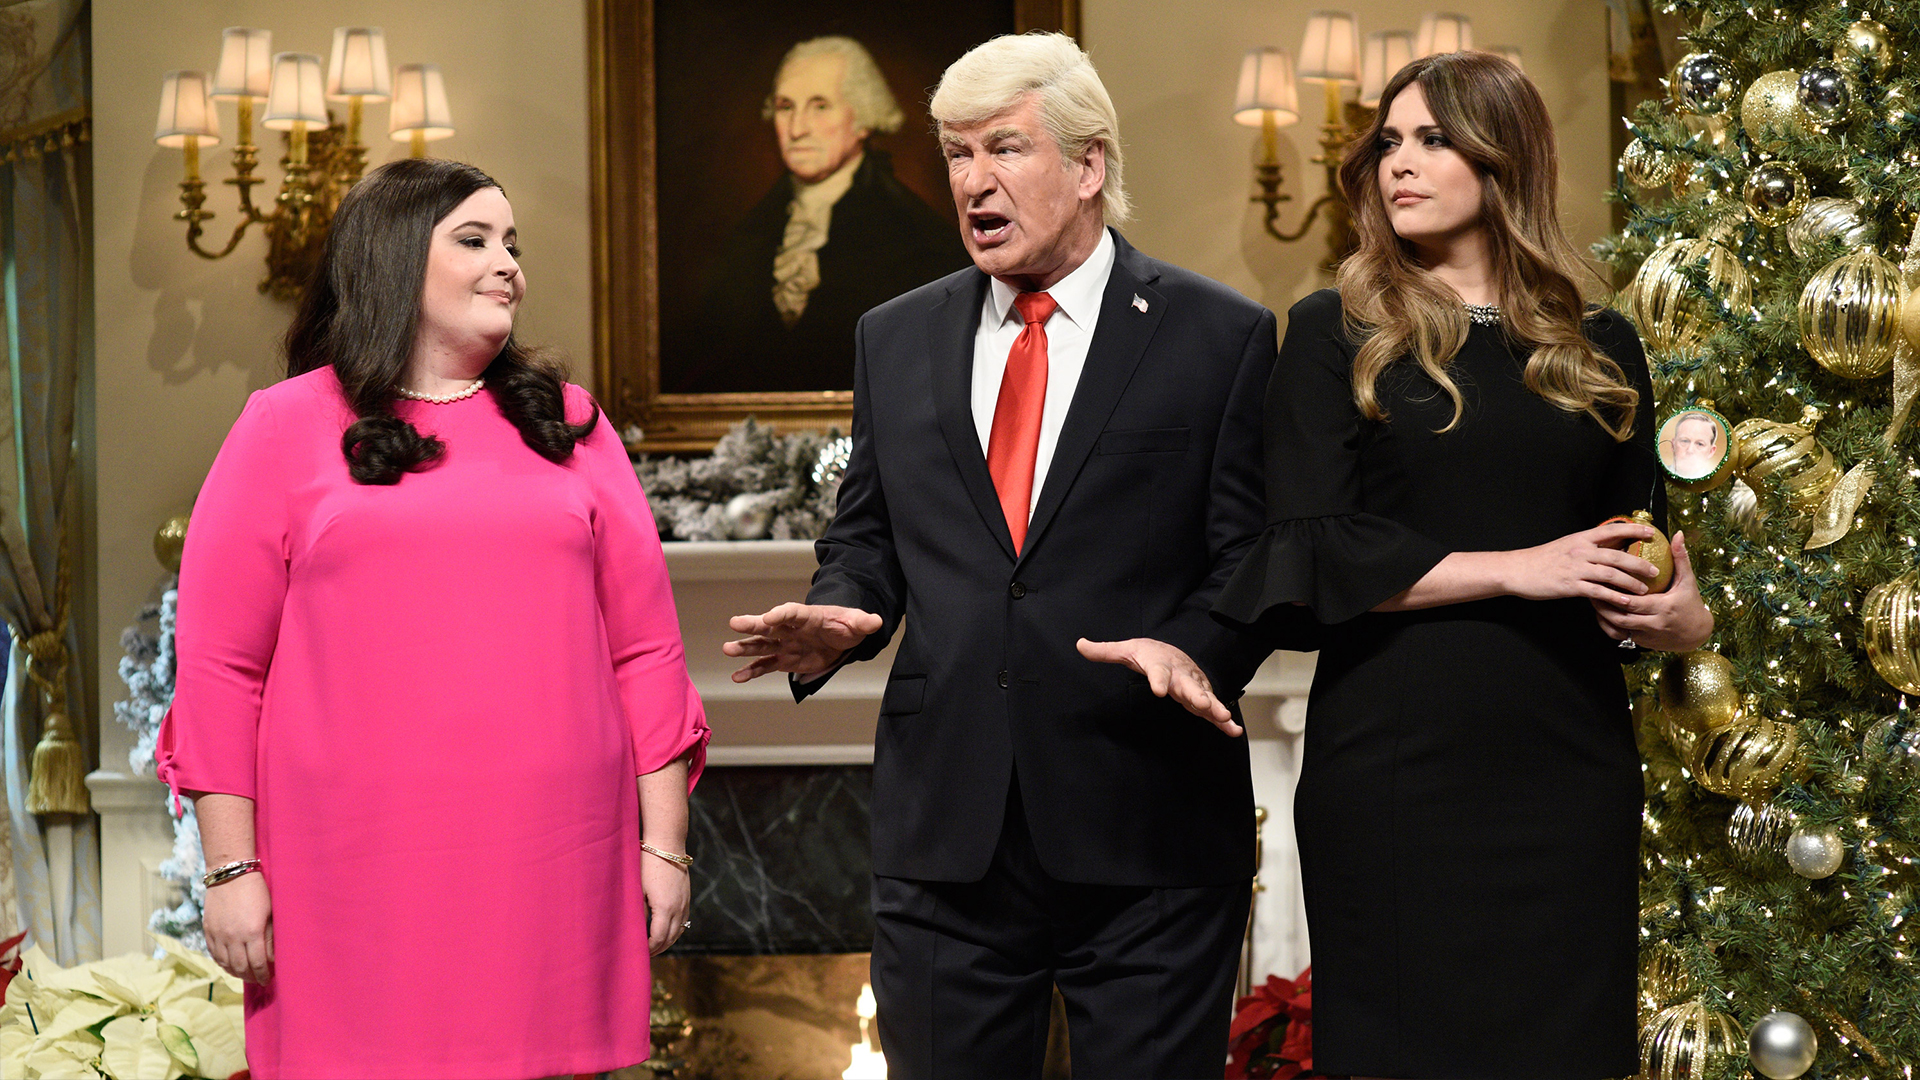 watch saturday night live highlight white house tree trimming cold open nbccom - Saturday Night Live Christmas Song